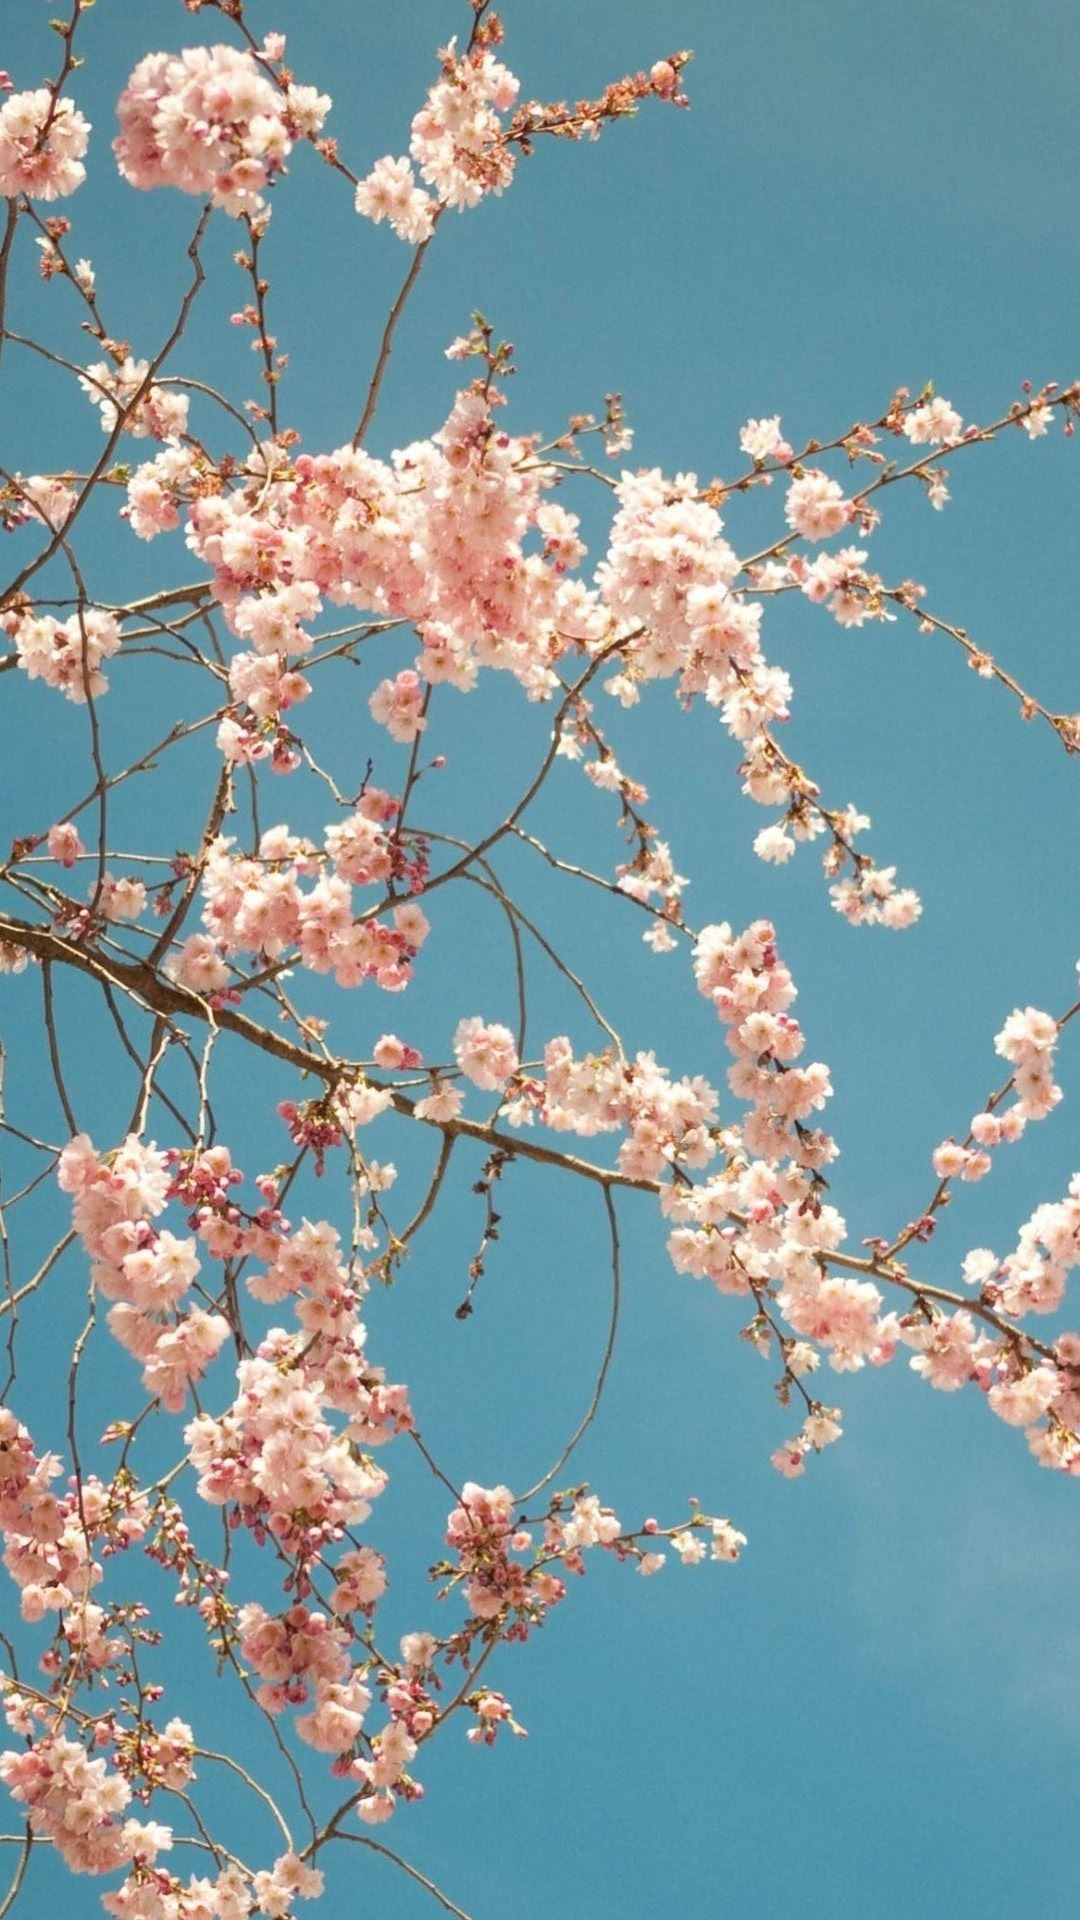 Cherry Blossom Backgrounds (76+ images)